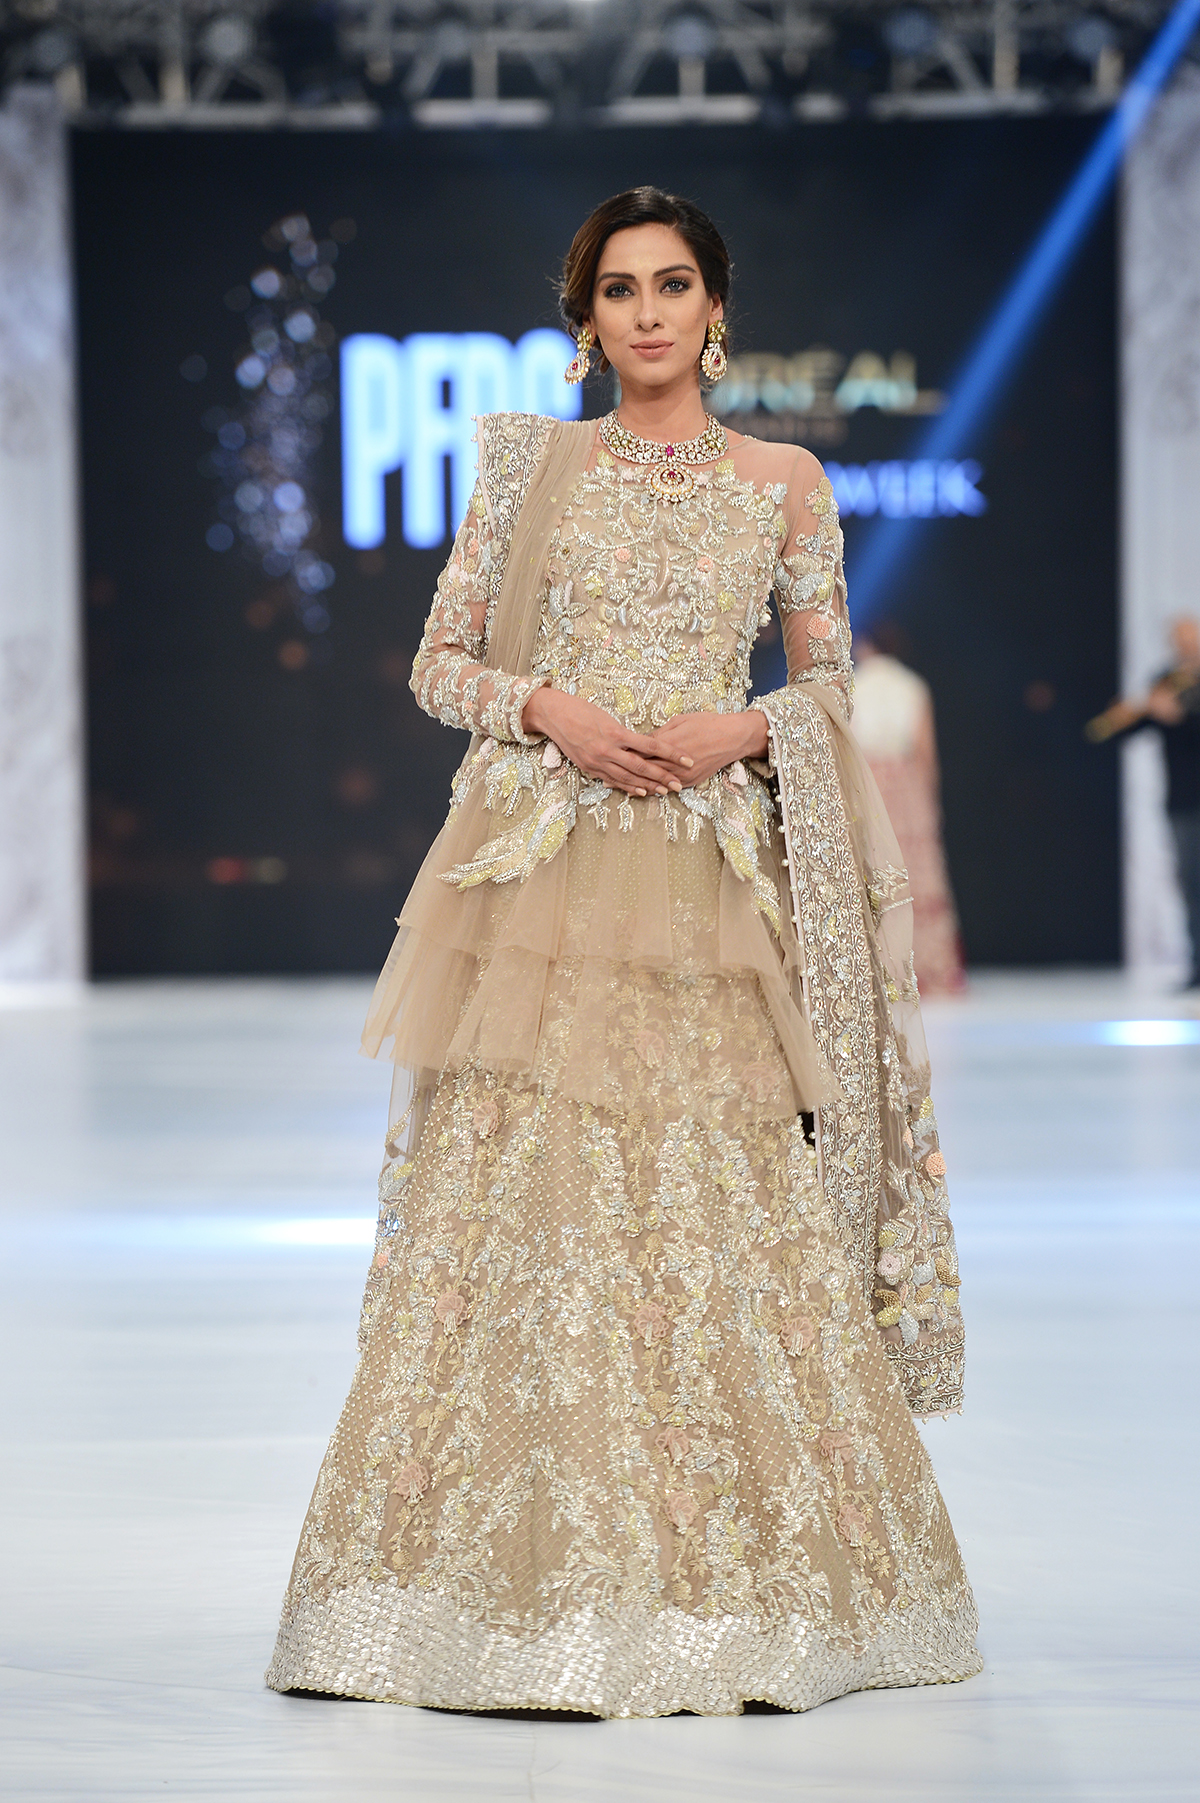 Saira Shakira - PFDC L'Oréal Paris Bridal Week - Photography by Faisal Farooqui, Dragonfly